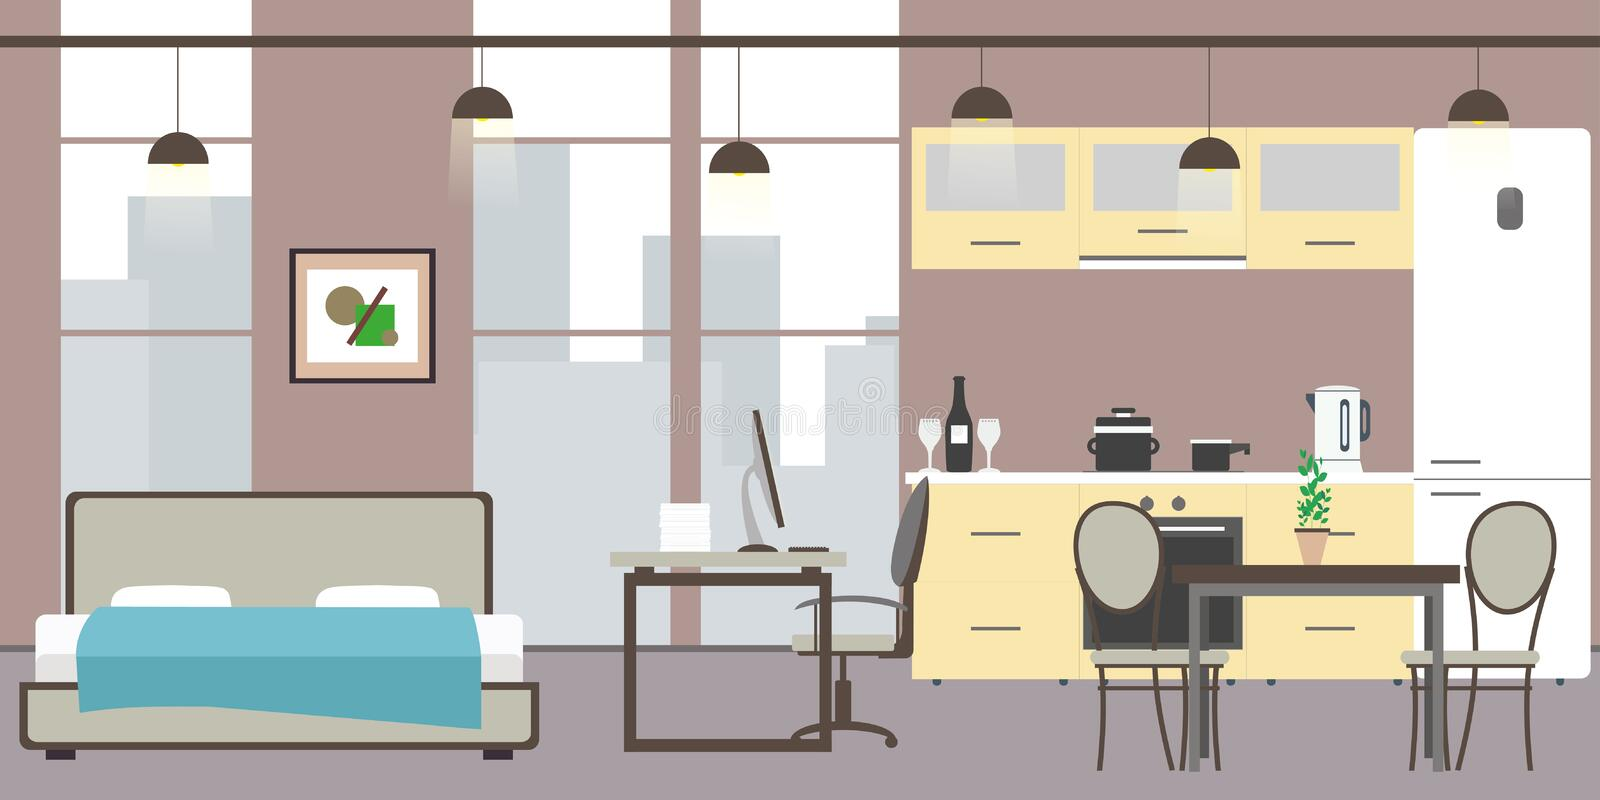 Empty Studio apartment with big windows. Bed, workspace and kitchen with utensils, flat vector illustration vector illustration